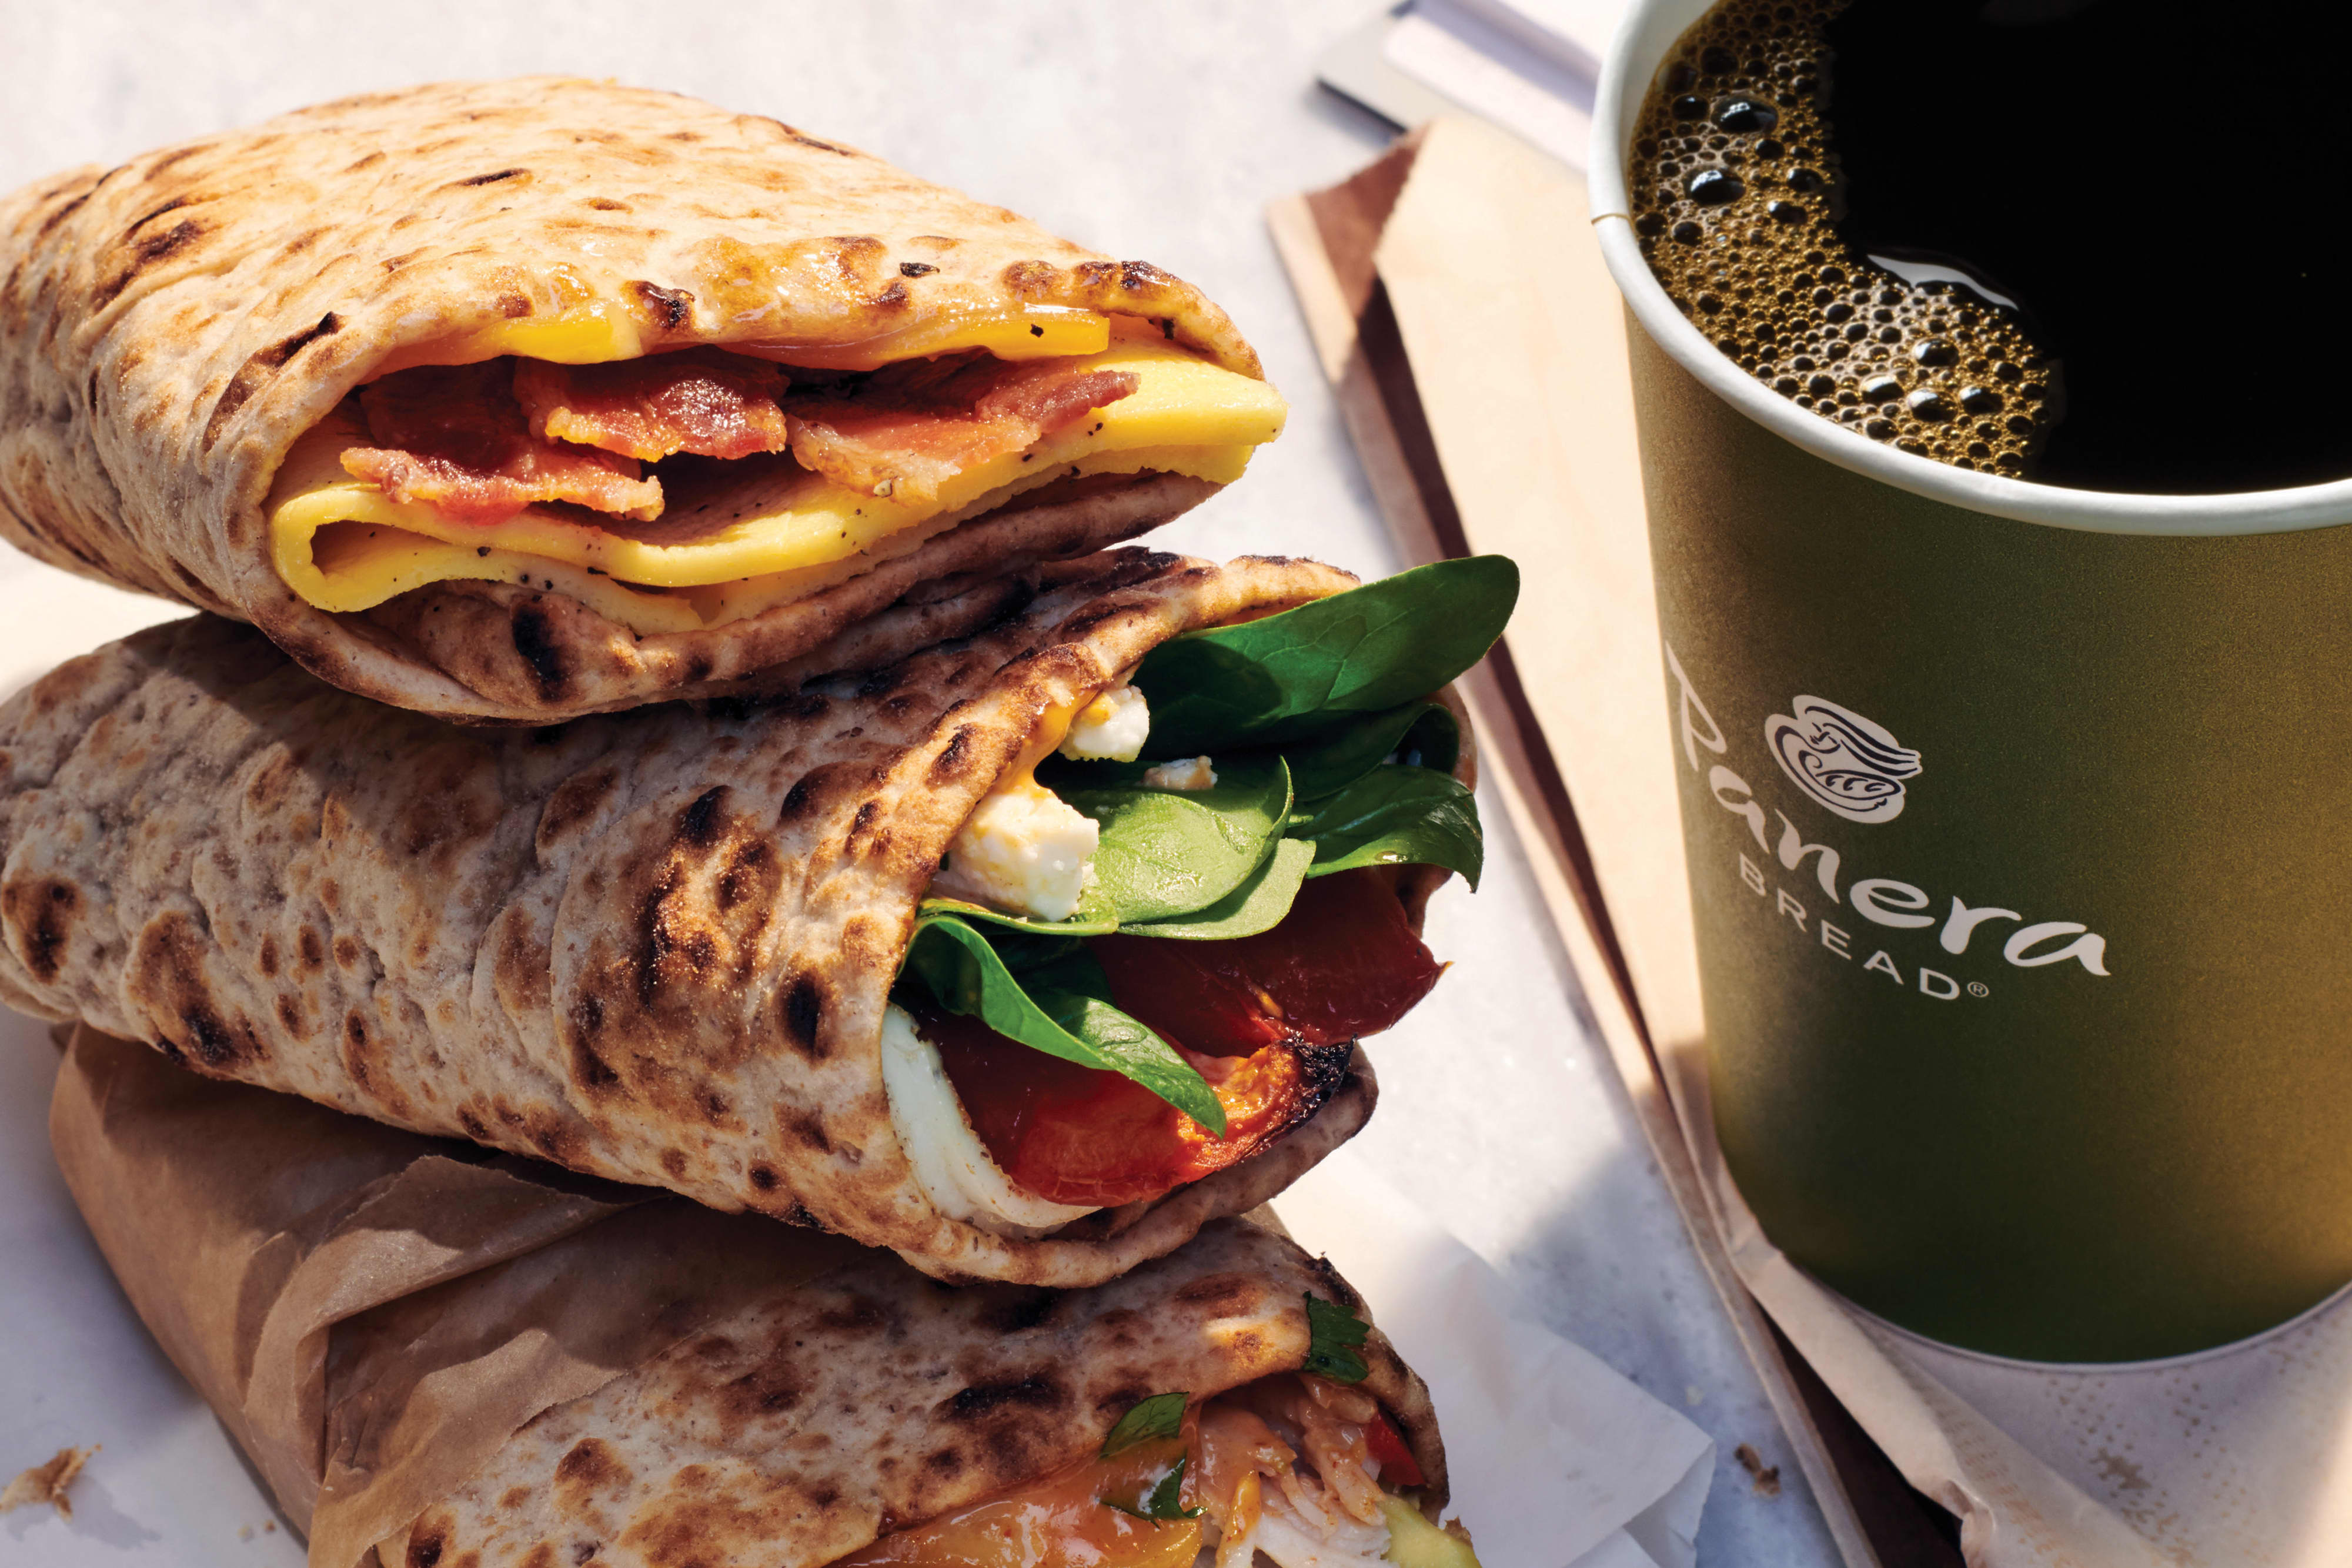 EMBARGOED: H/O: Panera Breakfast Wraps and Coffee